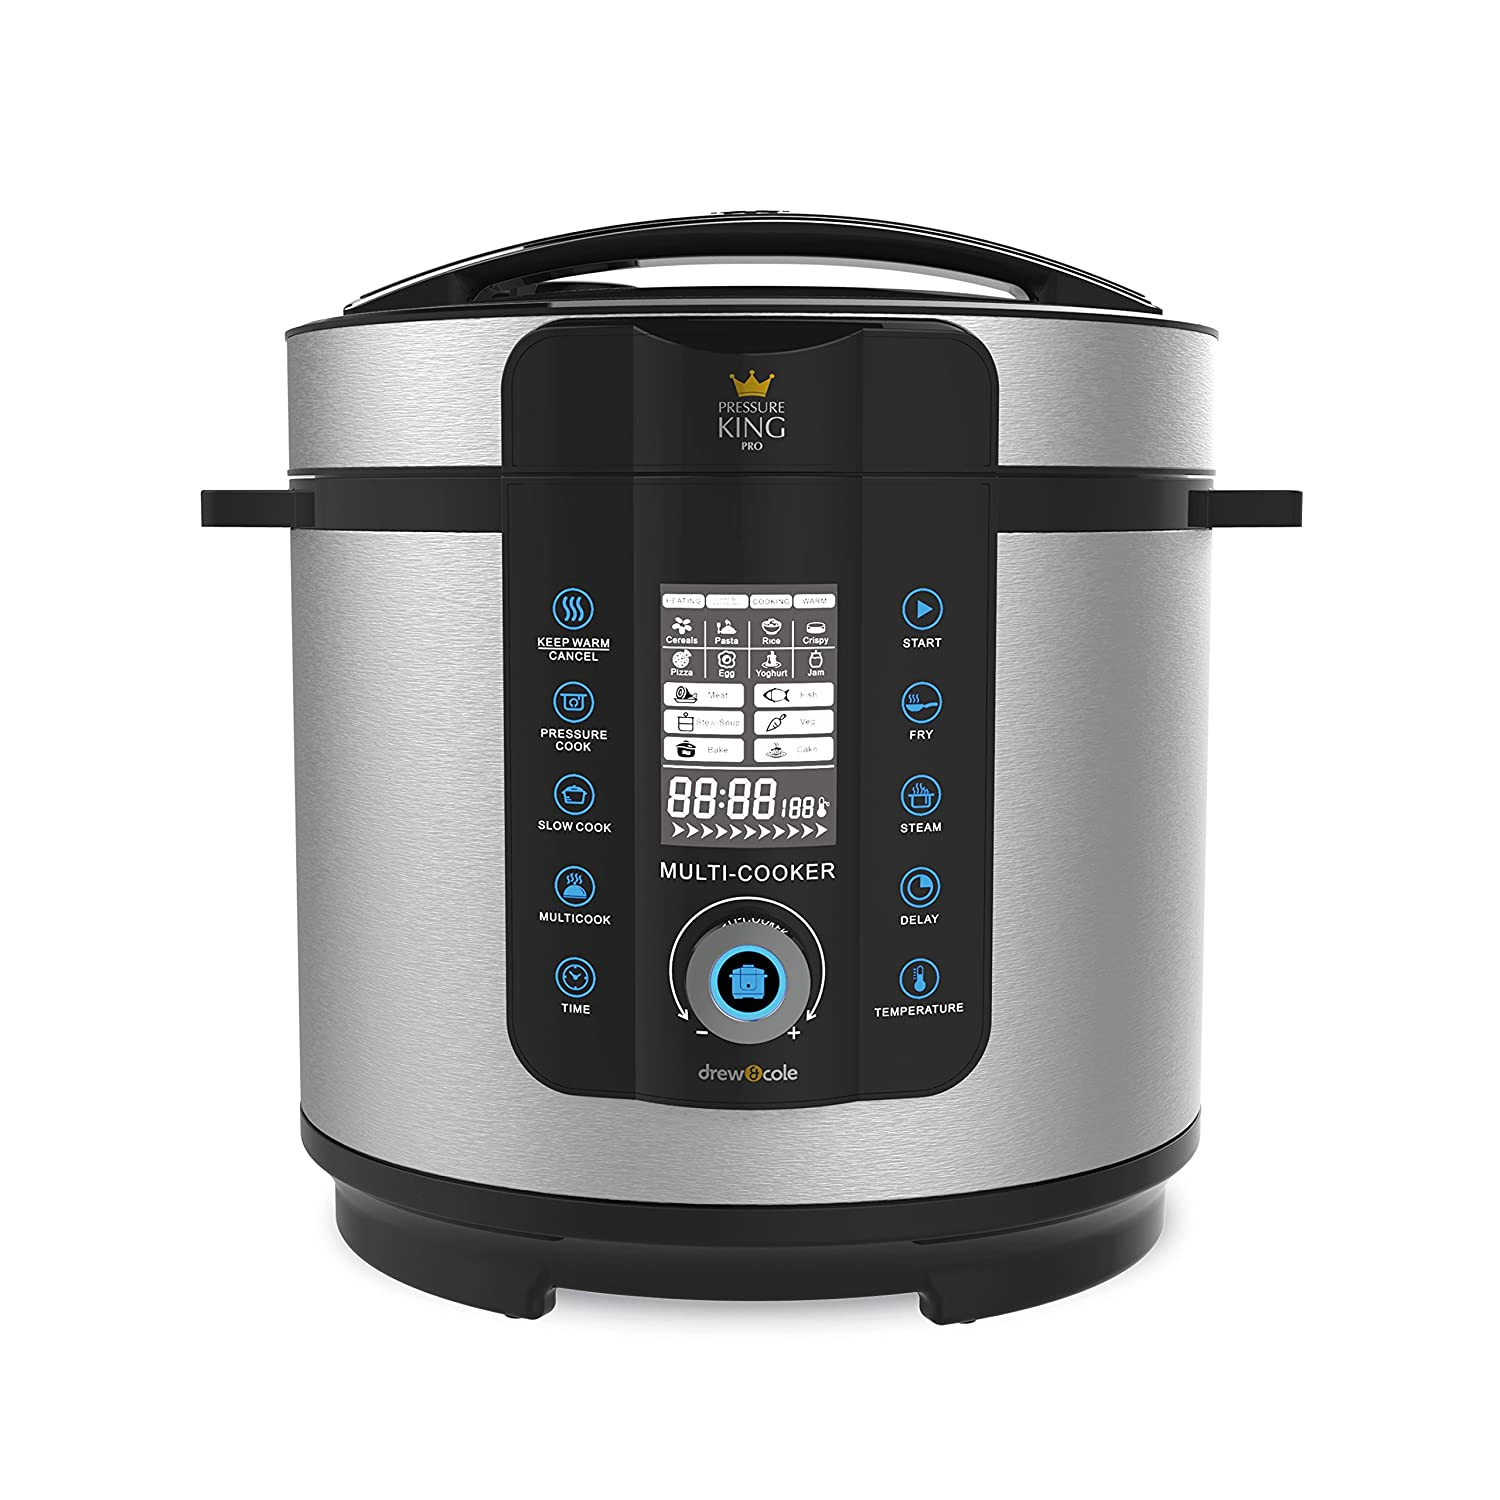 PRESSURE KING Pro Digital Pressure & Multi-Cooker -Chrome 20-in-1 digital cooker for easy meals -Five ways to cook with 14 pre-set functions -Cook from frozen -20 programs (Pizza, cakes, and more)